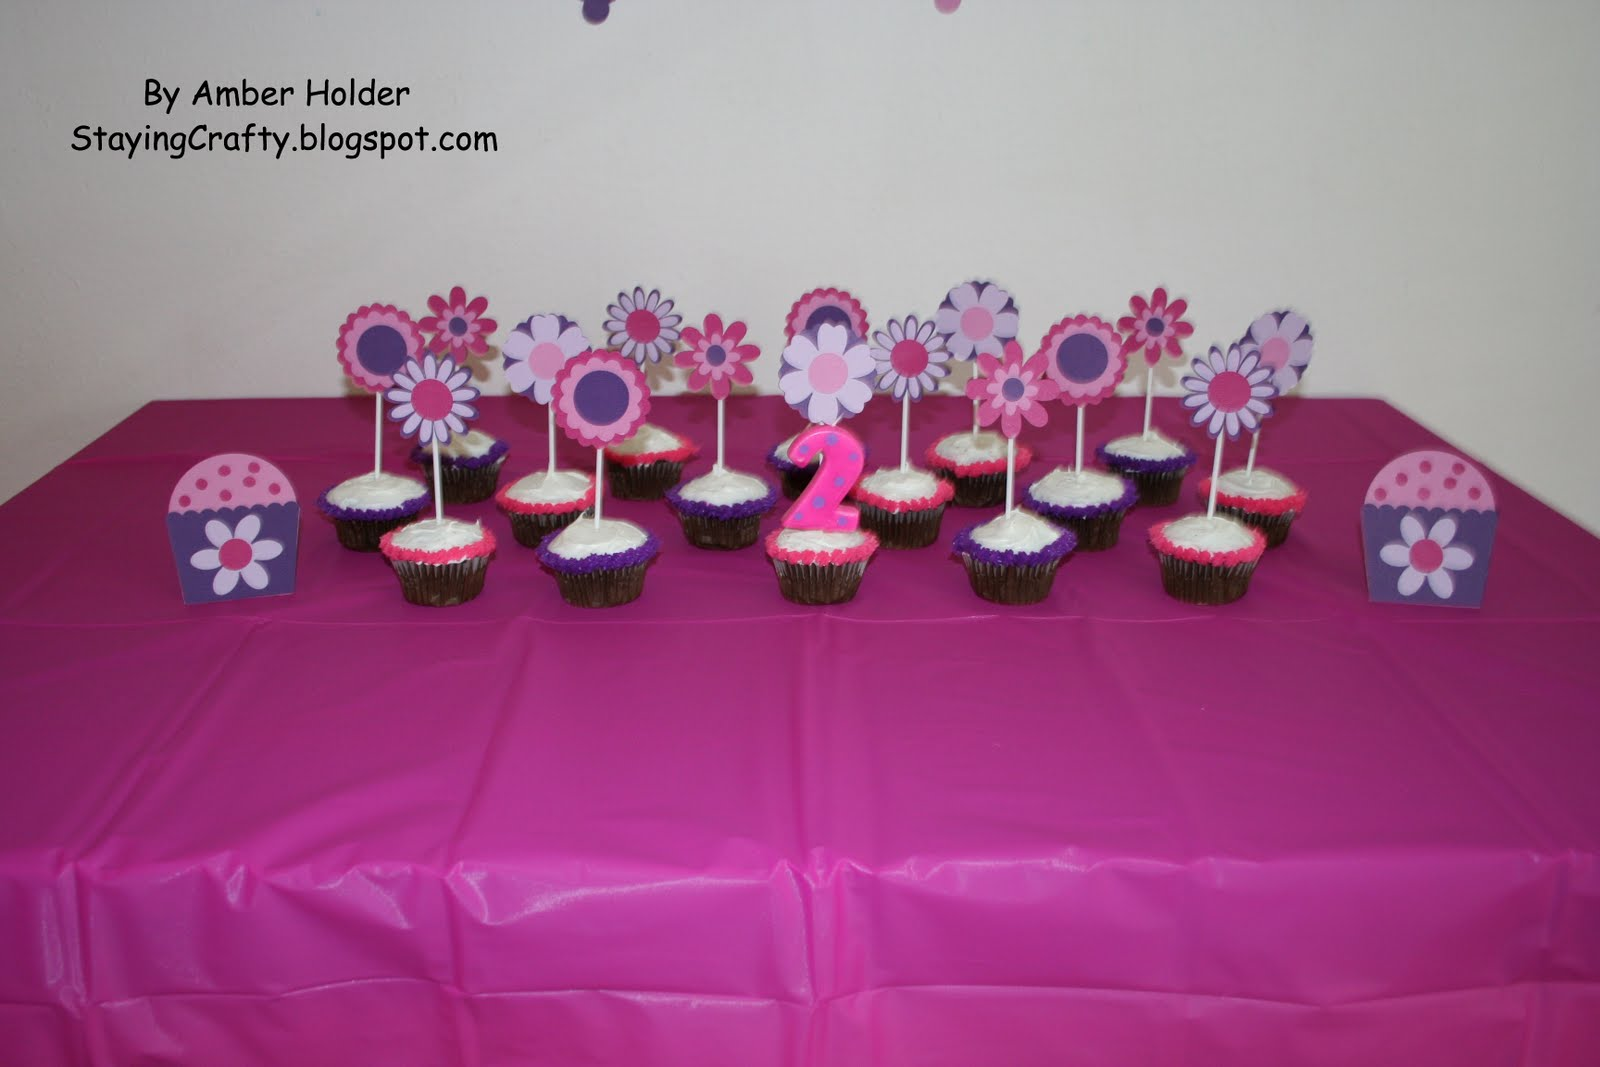 Staying crafty my daughter 39 s 2nd birthday party decorations for 2nd birthday decoration ideas